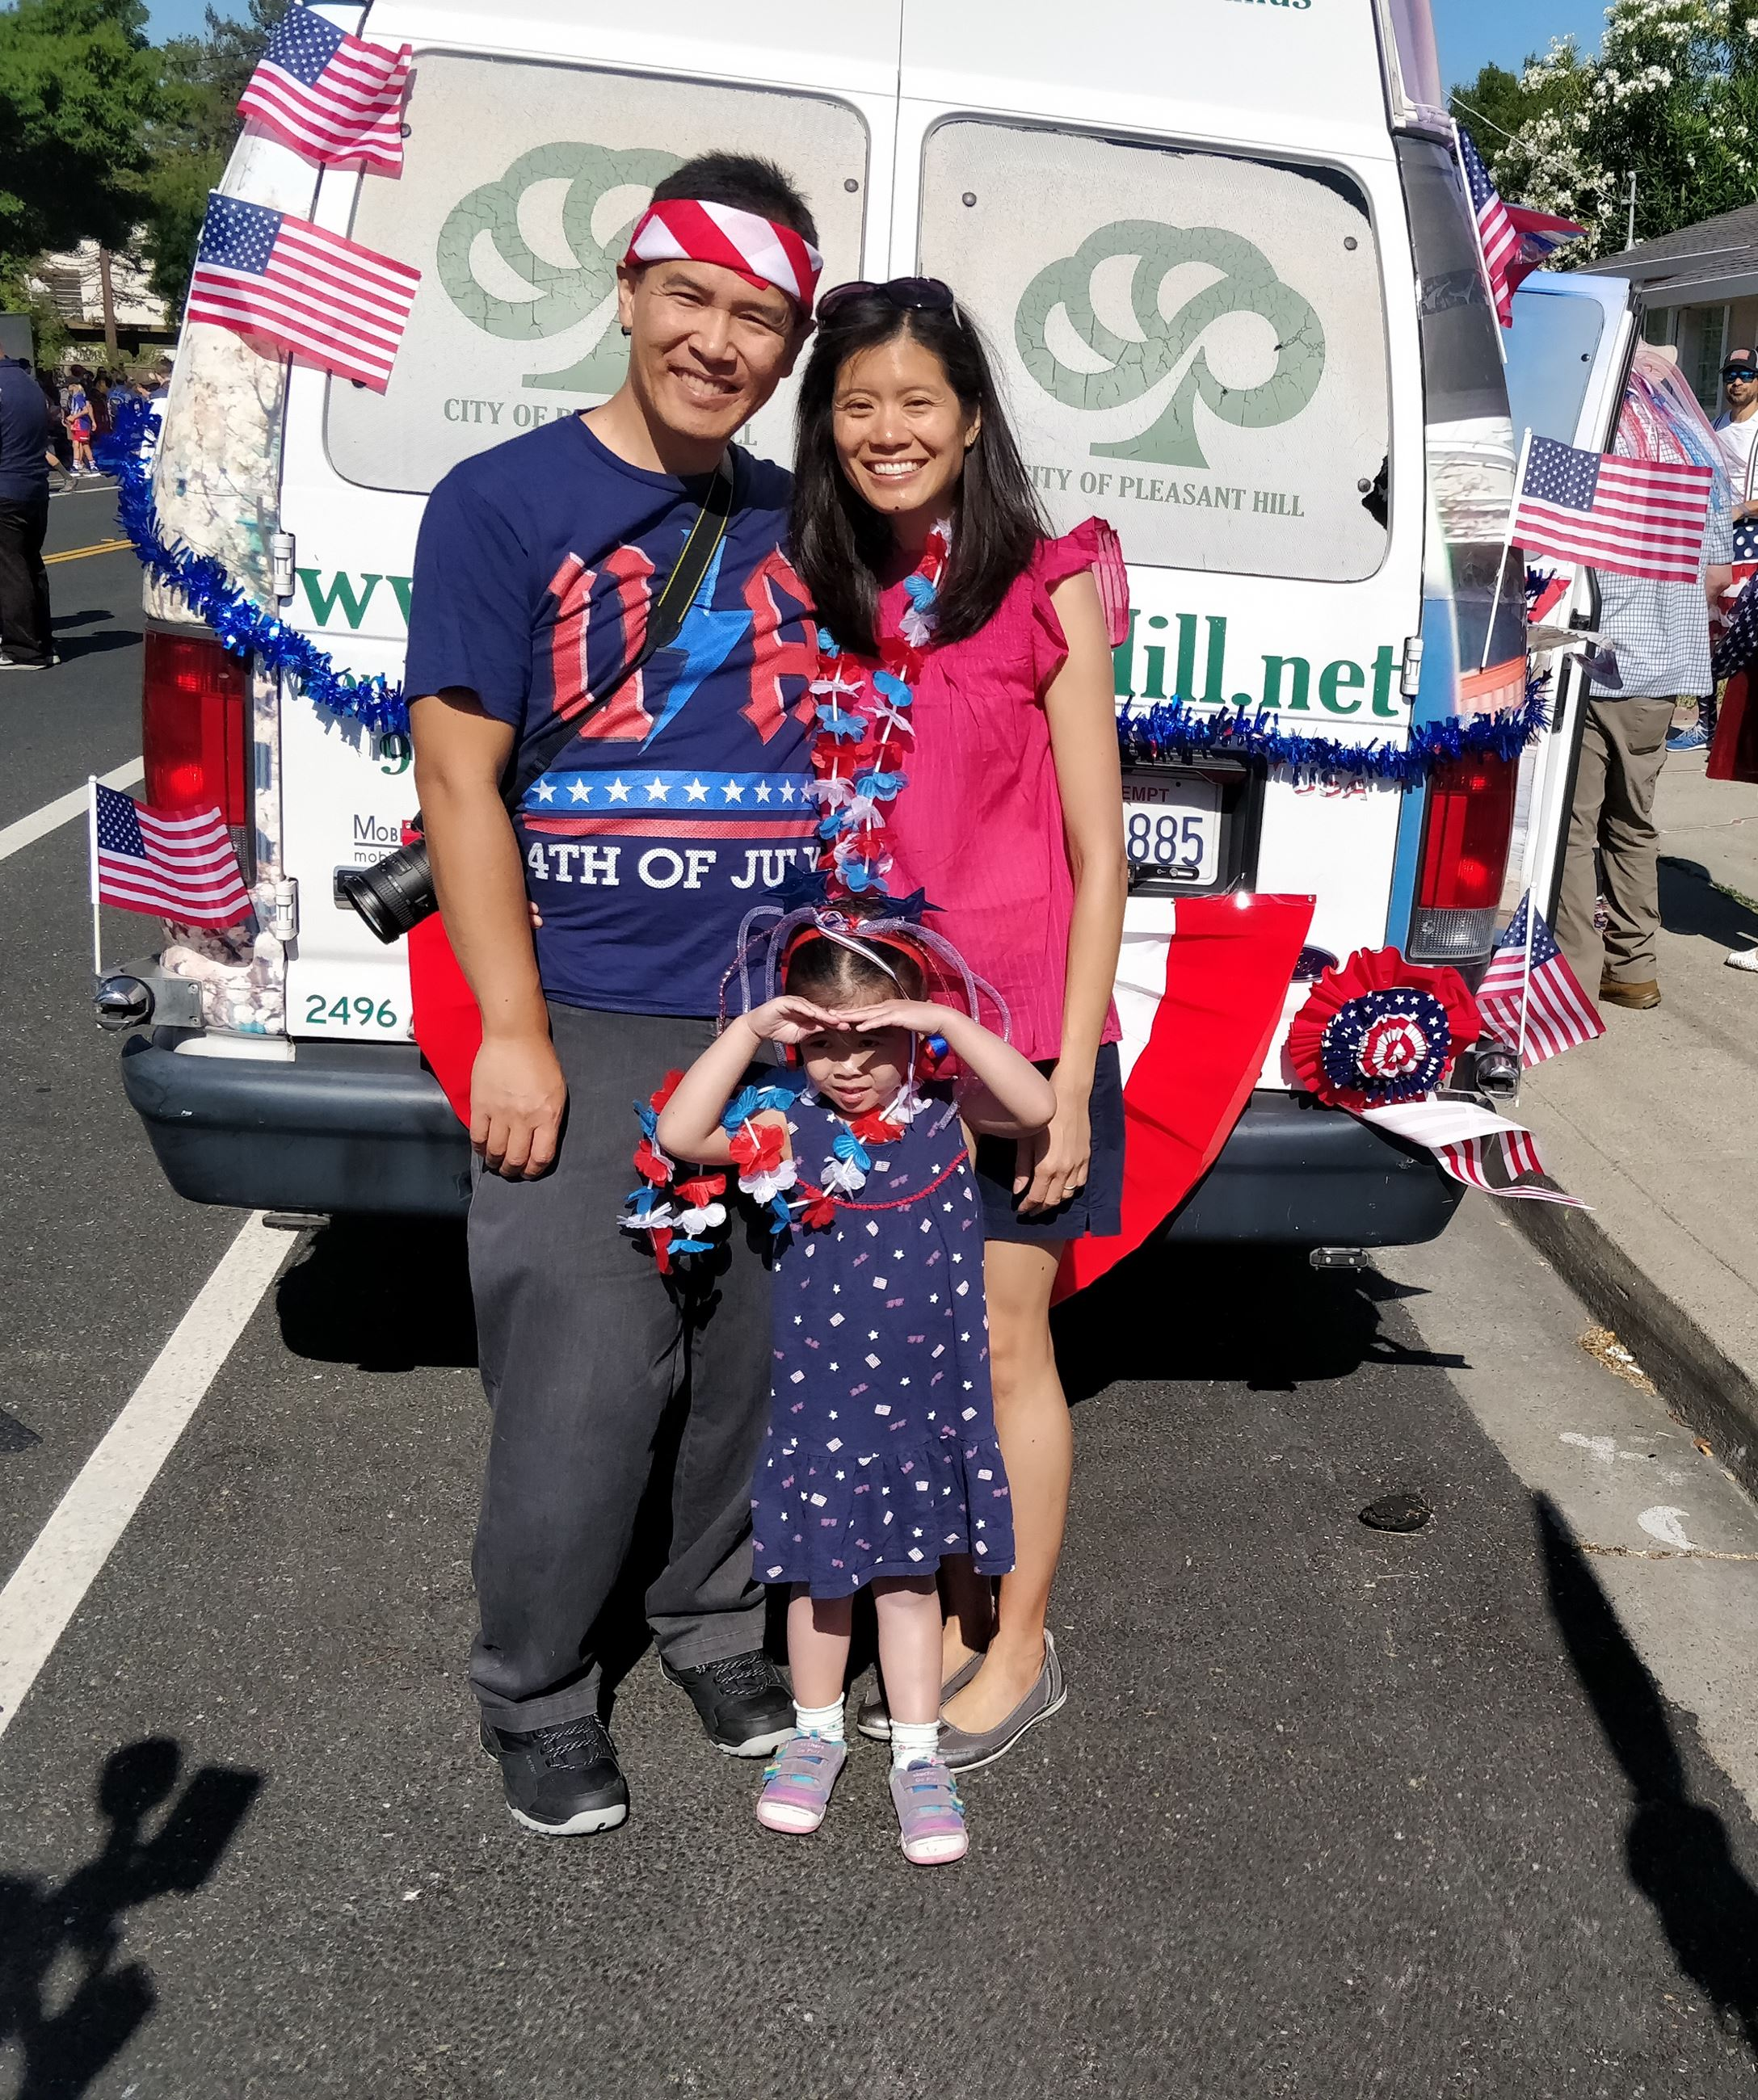 Commissioner Tran posing with his wife and daughter